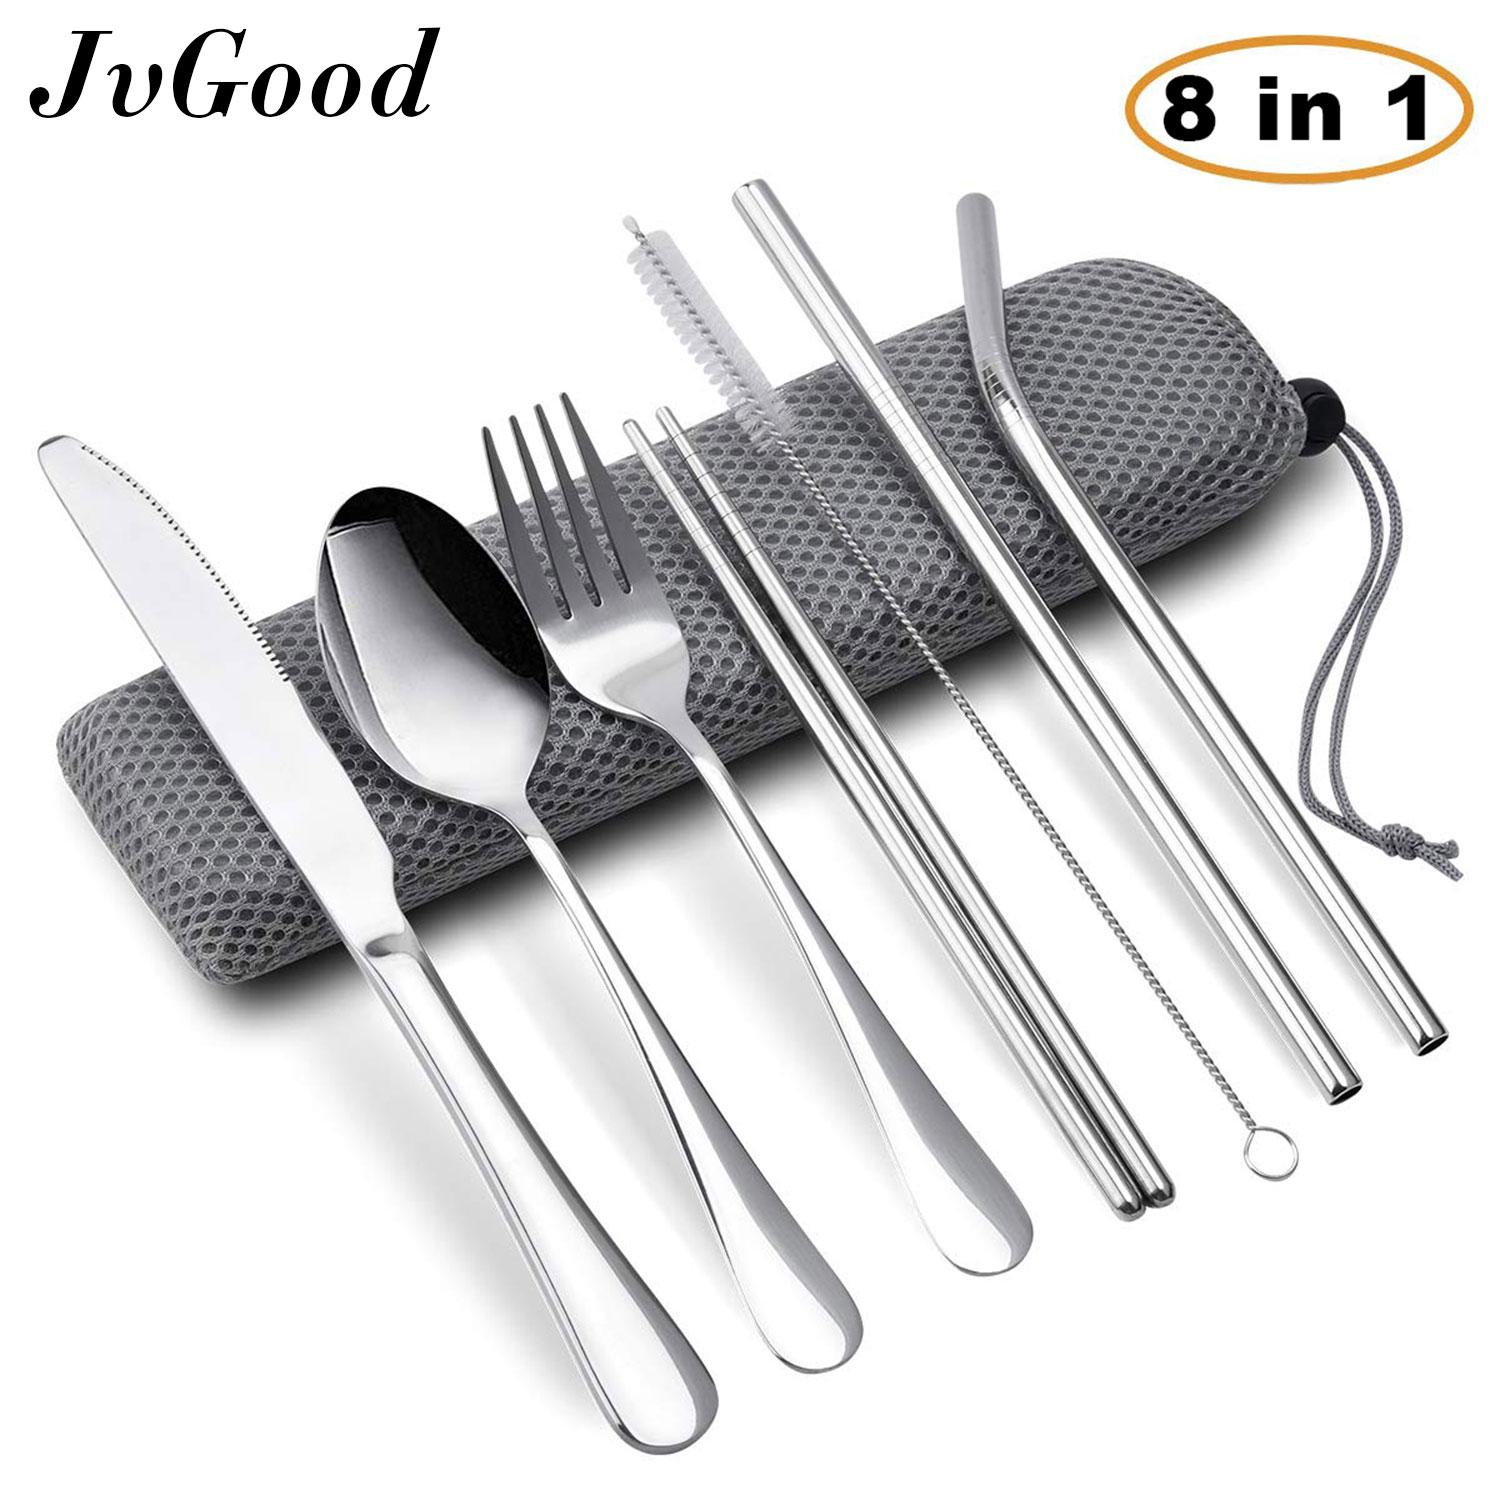 Jvgood 8pcs/set Jerami Stainless Steel Straws Reusable Metal Drinking Straws Including Knifee, Fork, Spoon, Chopsticks, Straight Straw, Bent Straw, Cleaning Brush And Carry Bag Portable Silverware Utensil Set By Jvgood.